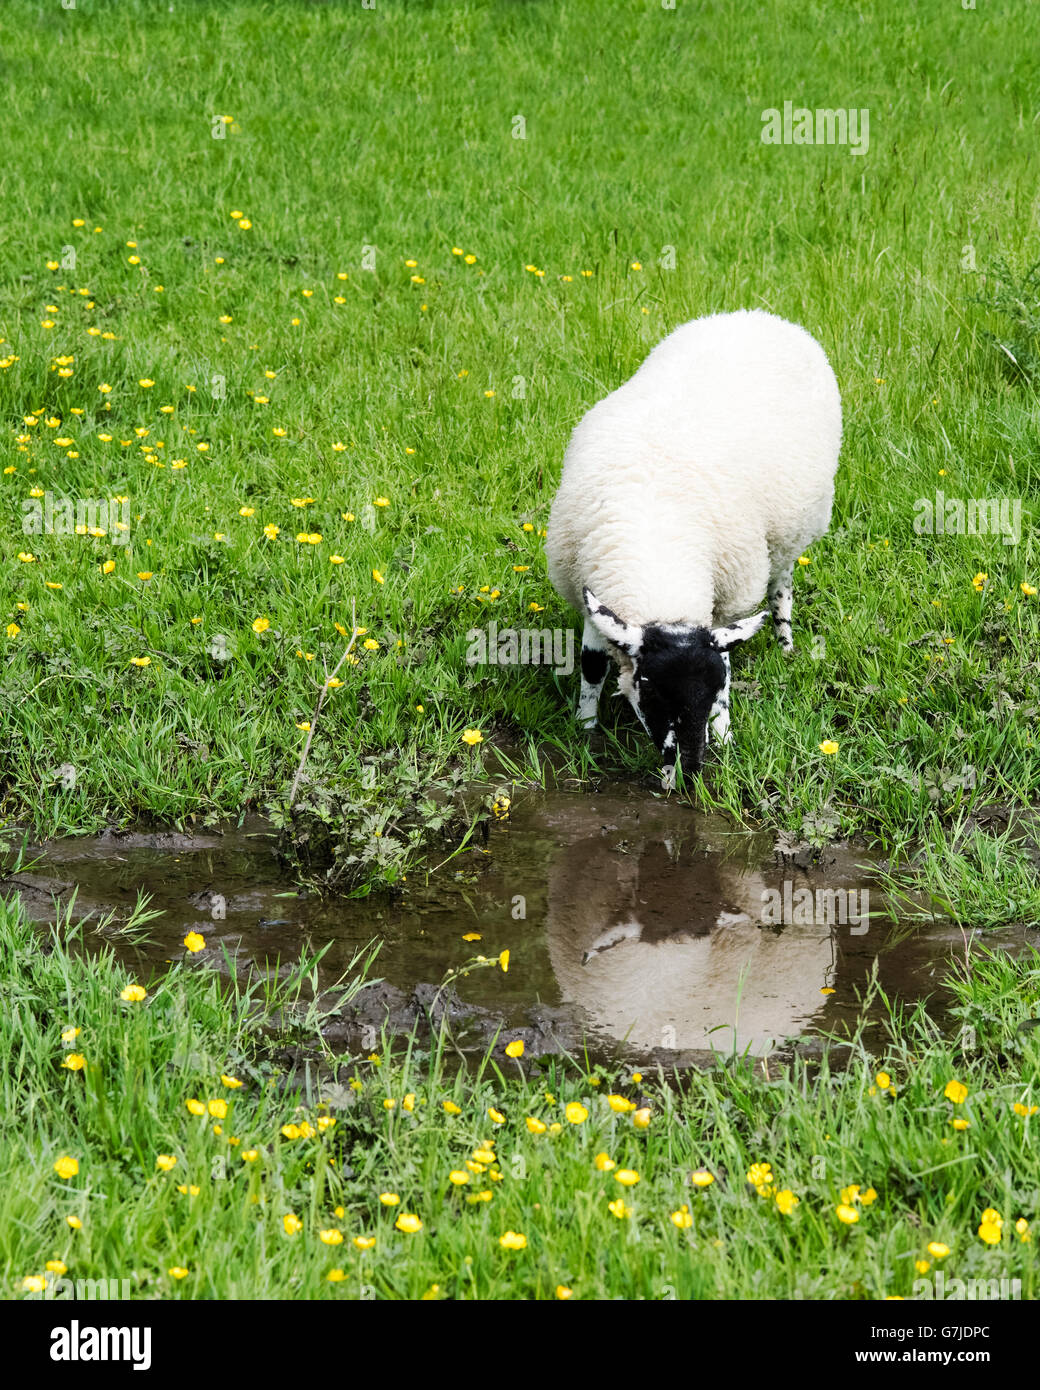 A Suffolk lamb drinking from a muddy puddle beside the Teesdale Way, County Durham, England, UK - Stock Image